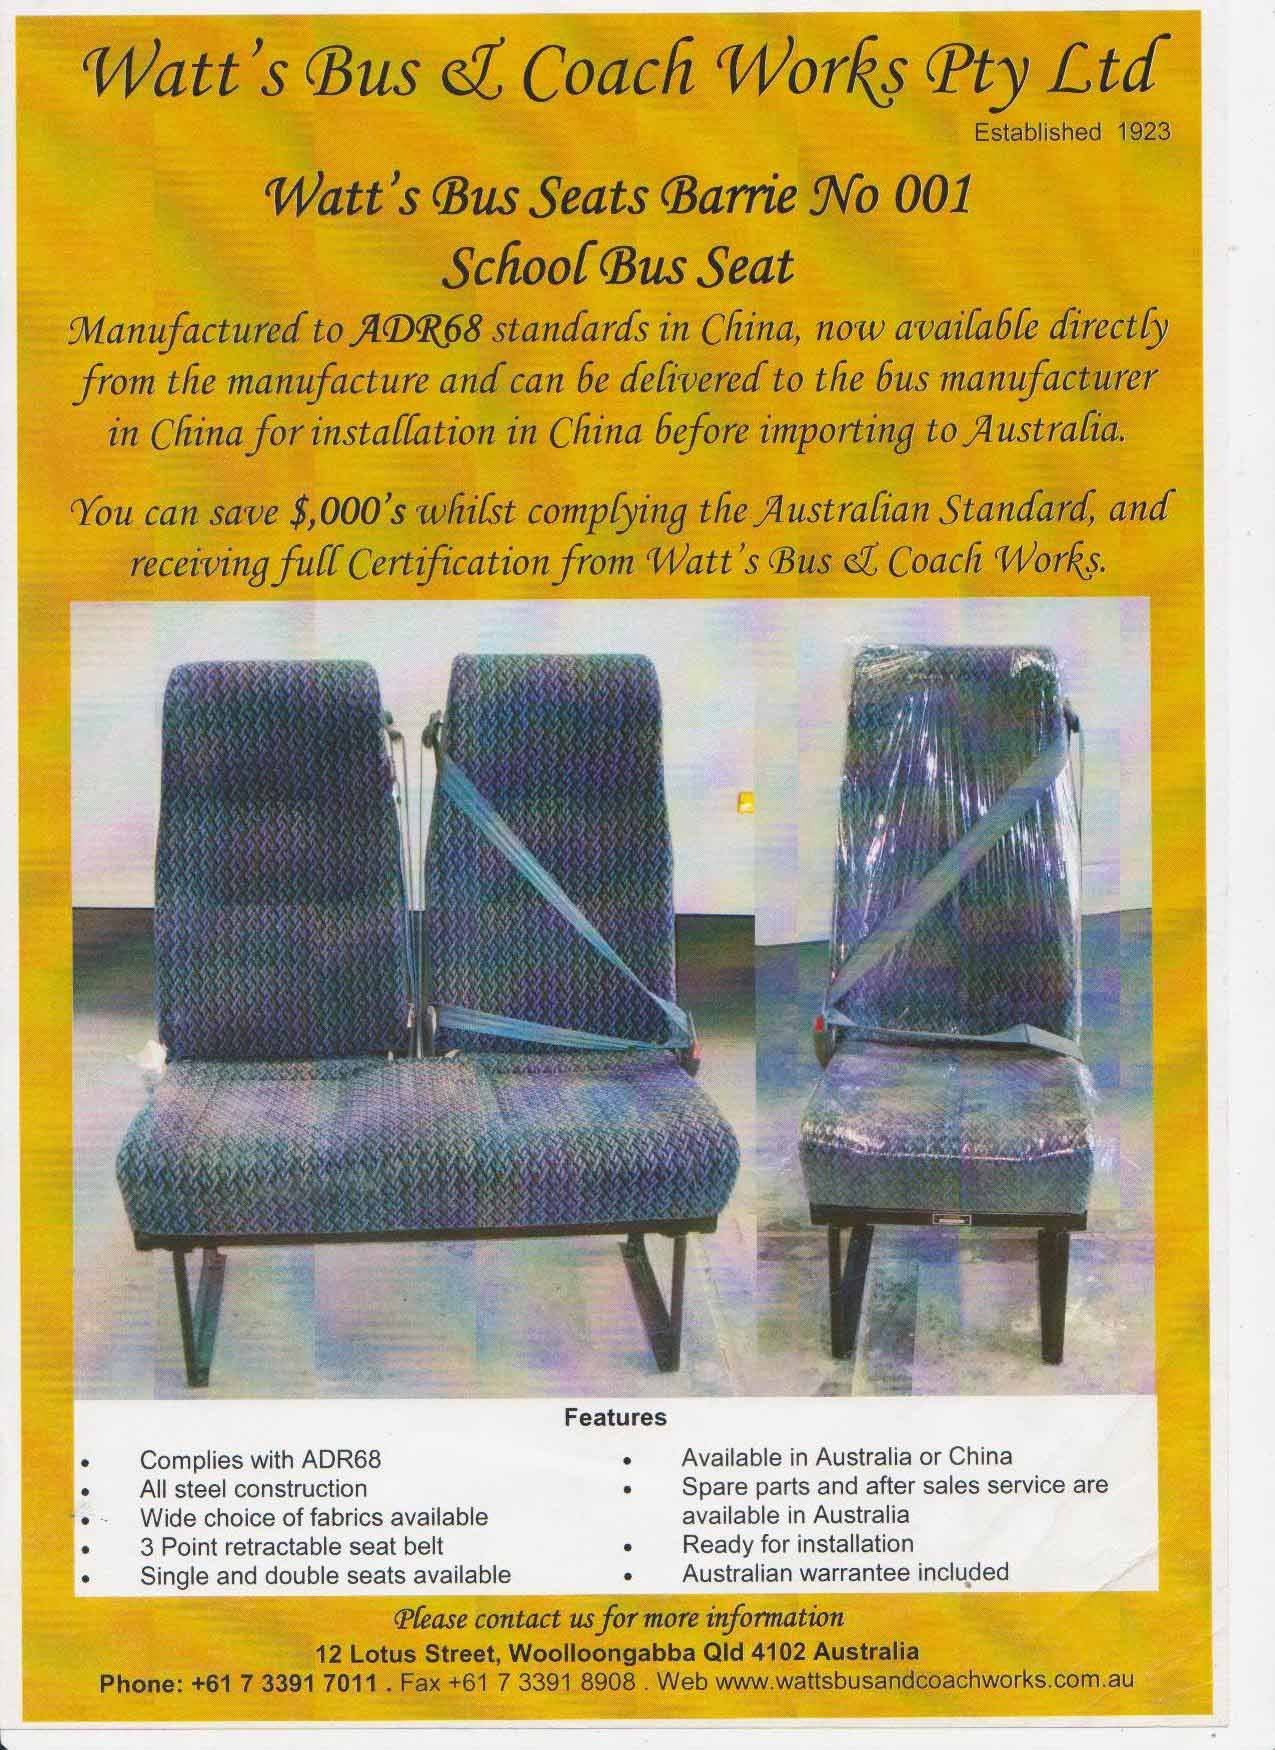 School bus seat before repair